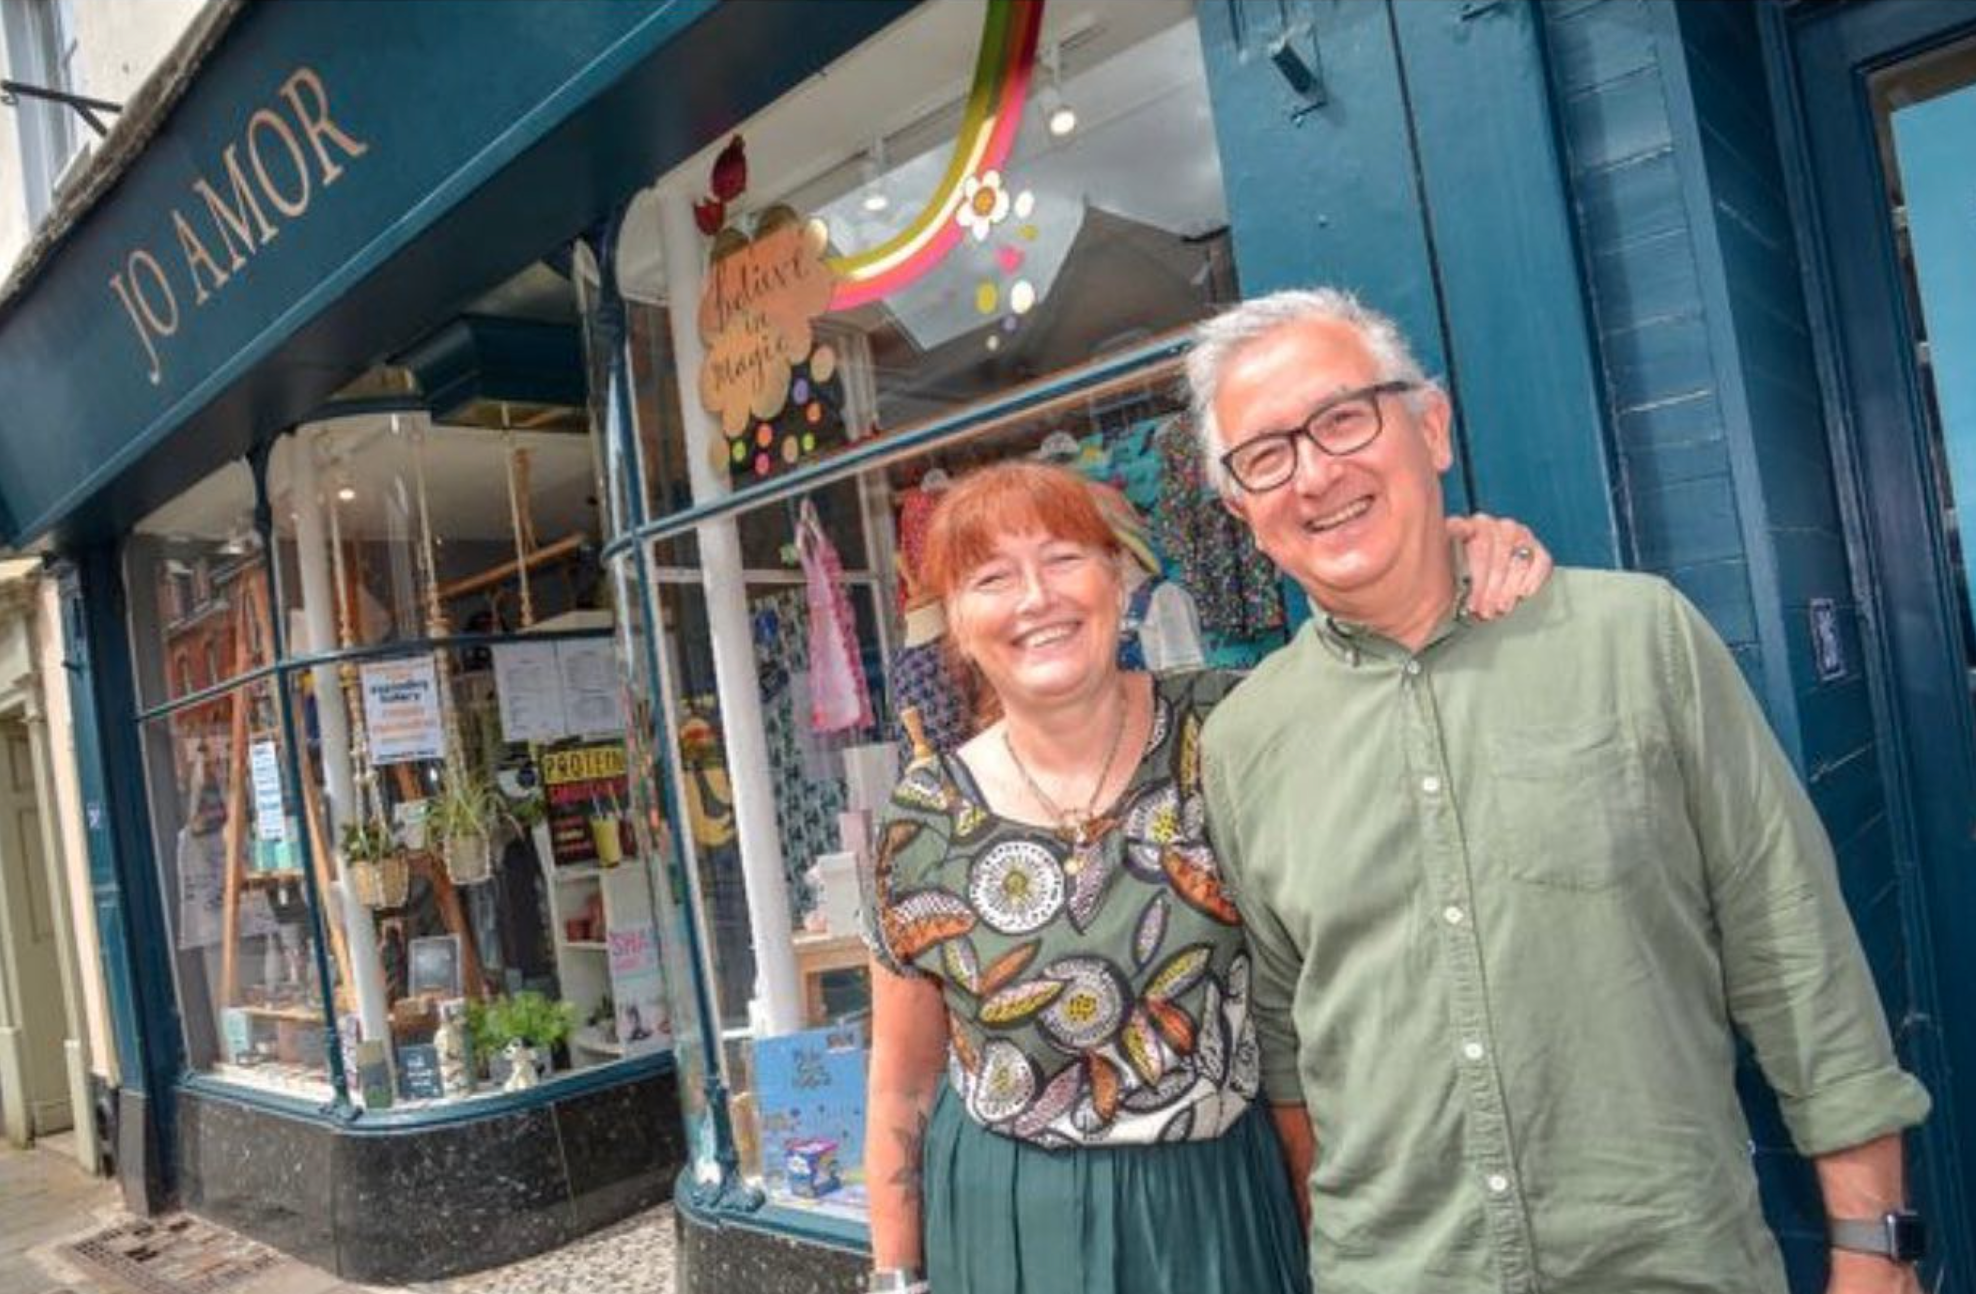 Above: Jo and Mike Webber of Jo Amor in Tiverton are enjoying being back open.